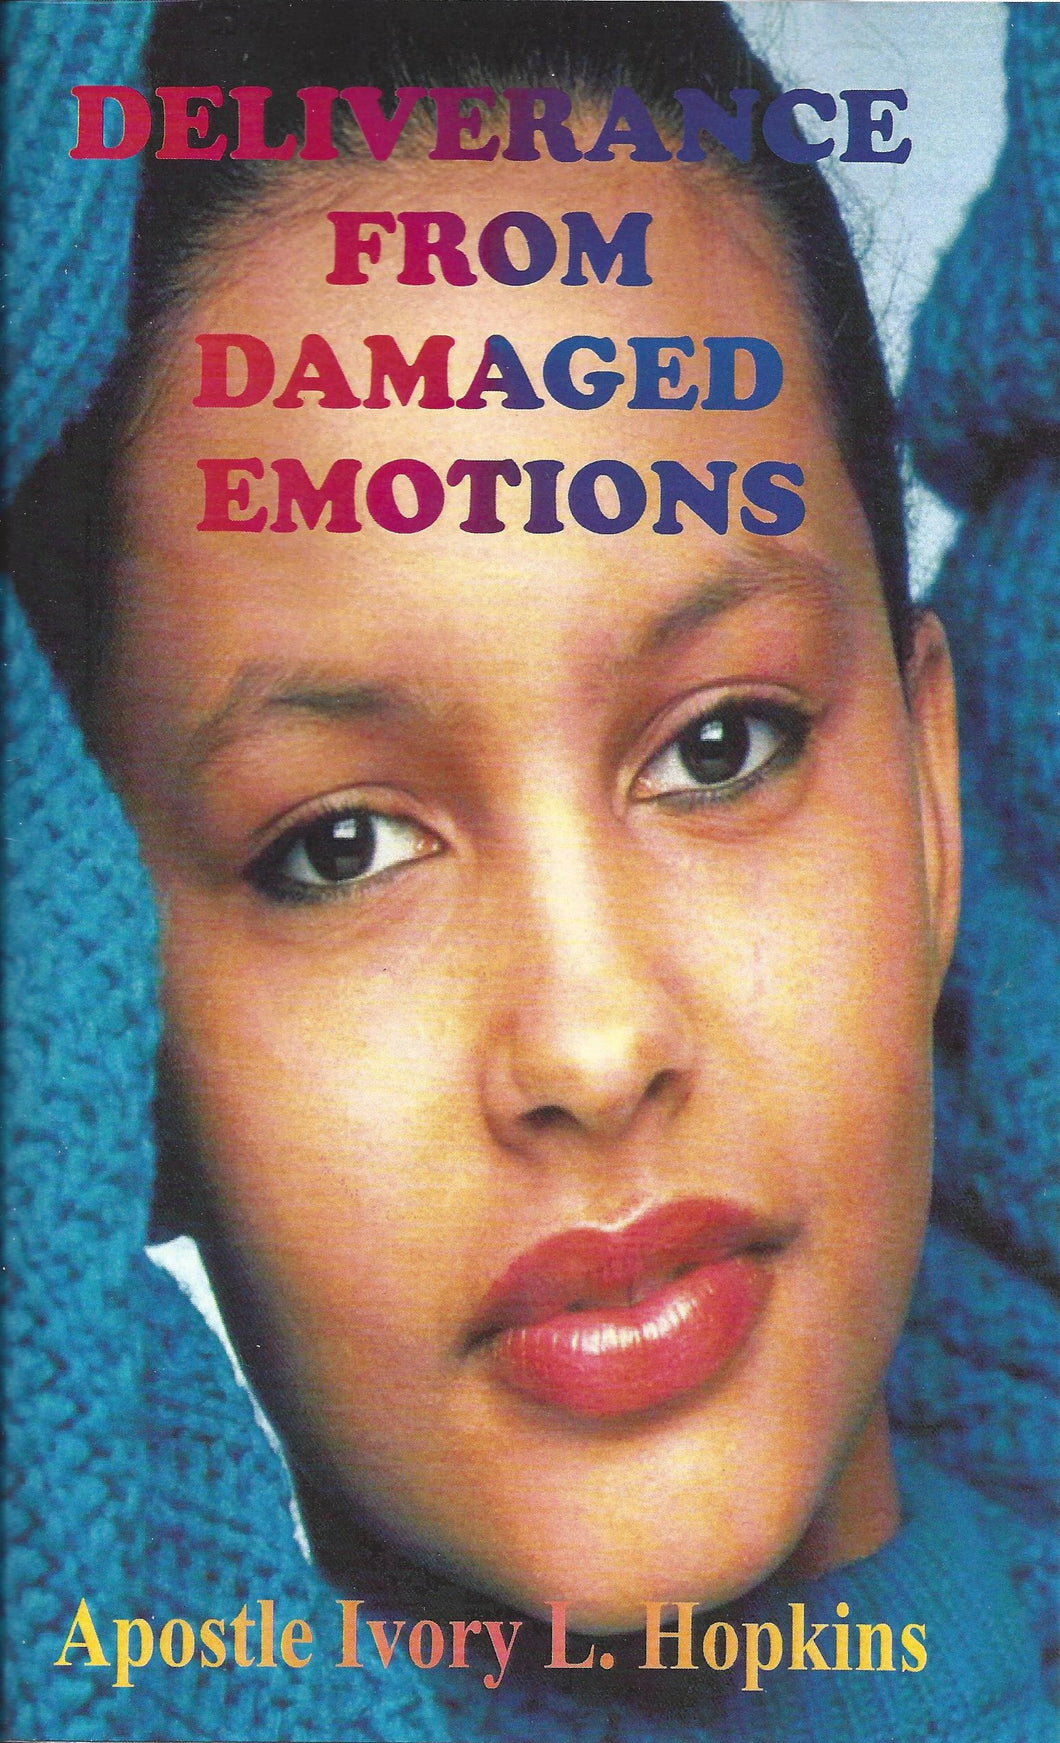 MP3 - 81 - Damaged Emotions and Infirmities